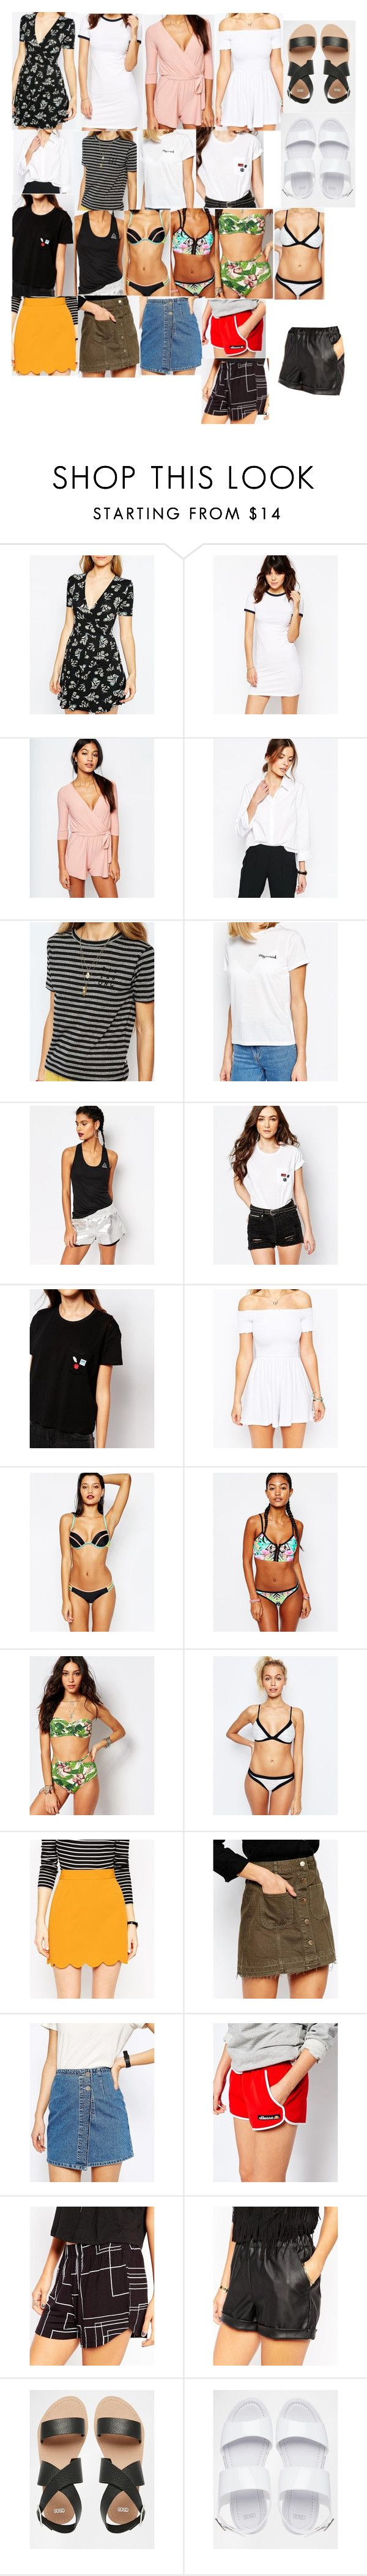 """""""ASOS Spring/Summer Potentials"""" by fivesecondsofinspiration ❤ liked on Polyvore featuring ASOS, VILA, Billabong, Daisy Street, Reebok, Pull&Bear, River Island, The Bikini Lab and ellesse"""